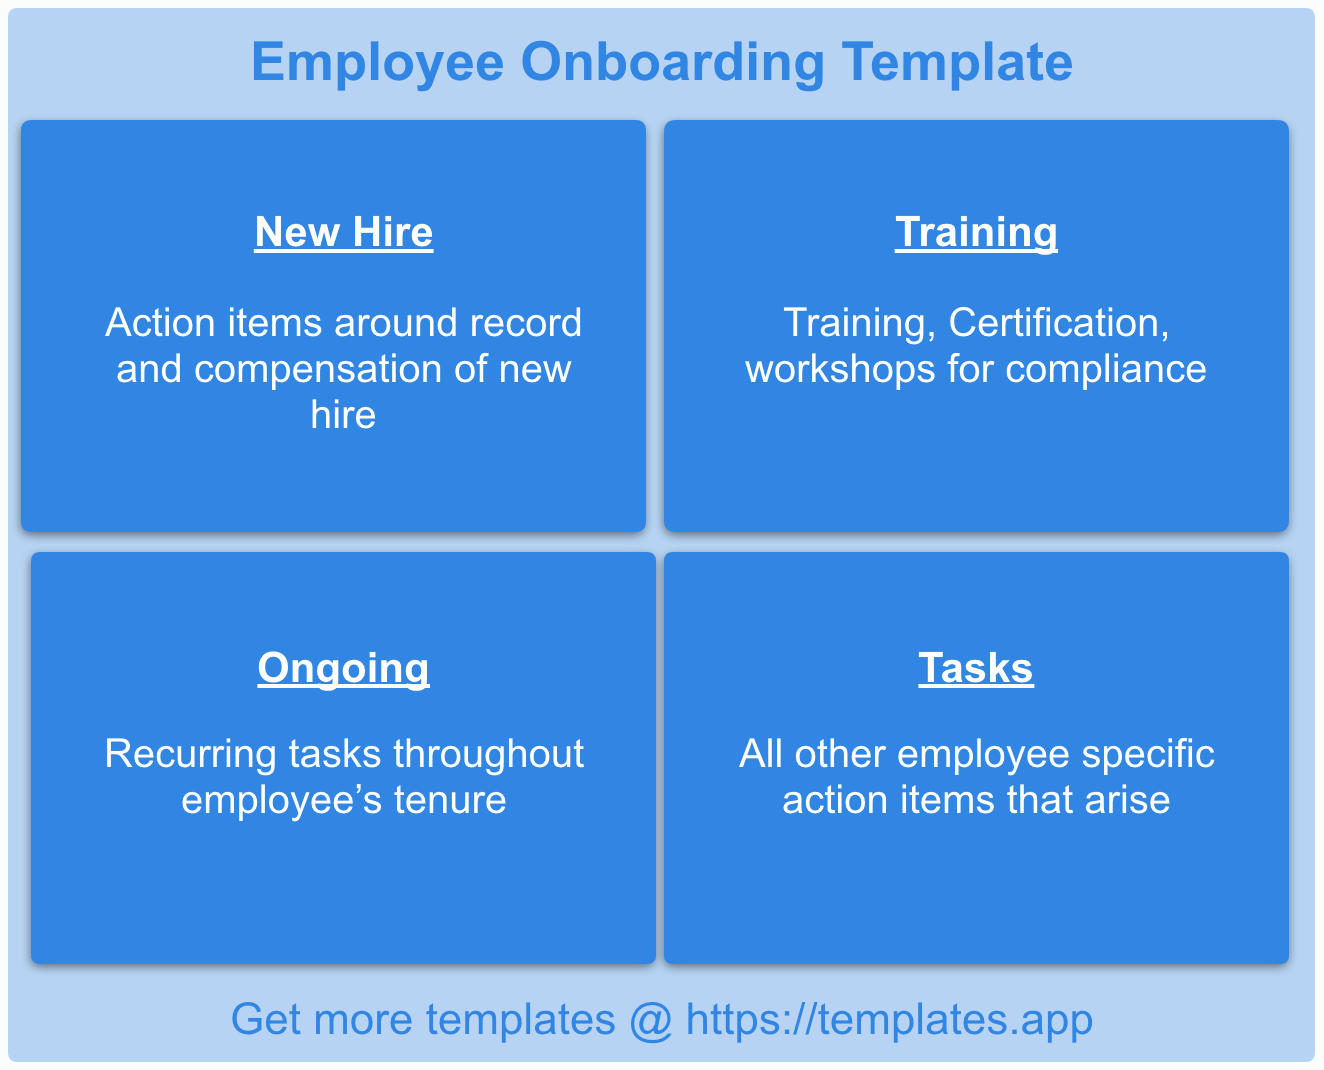 Human Resources: Employees Onboarding Template by templates.app